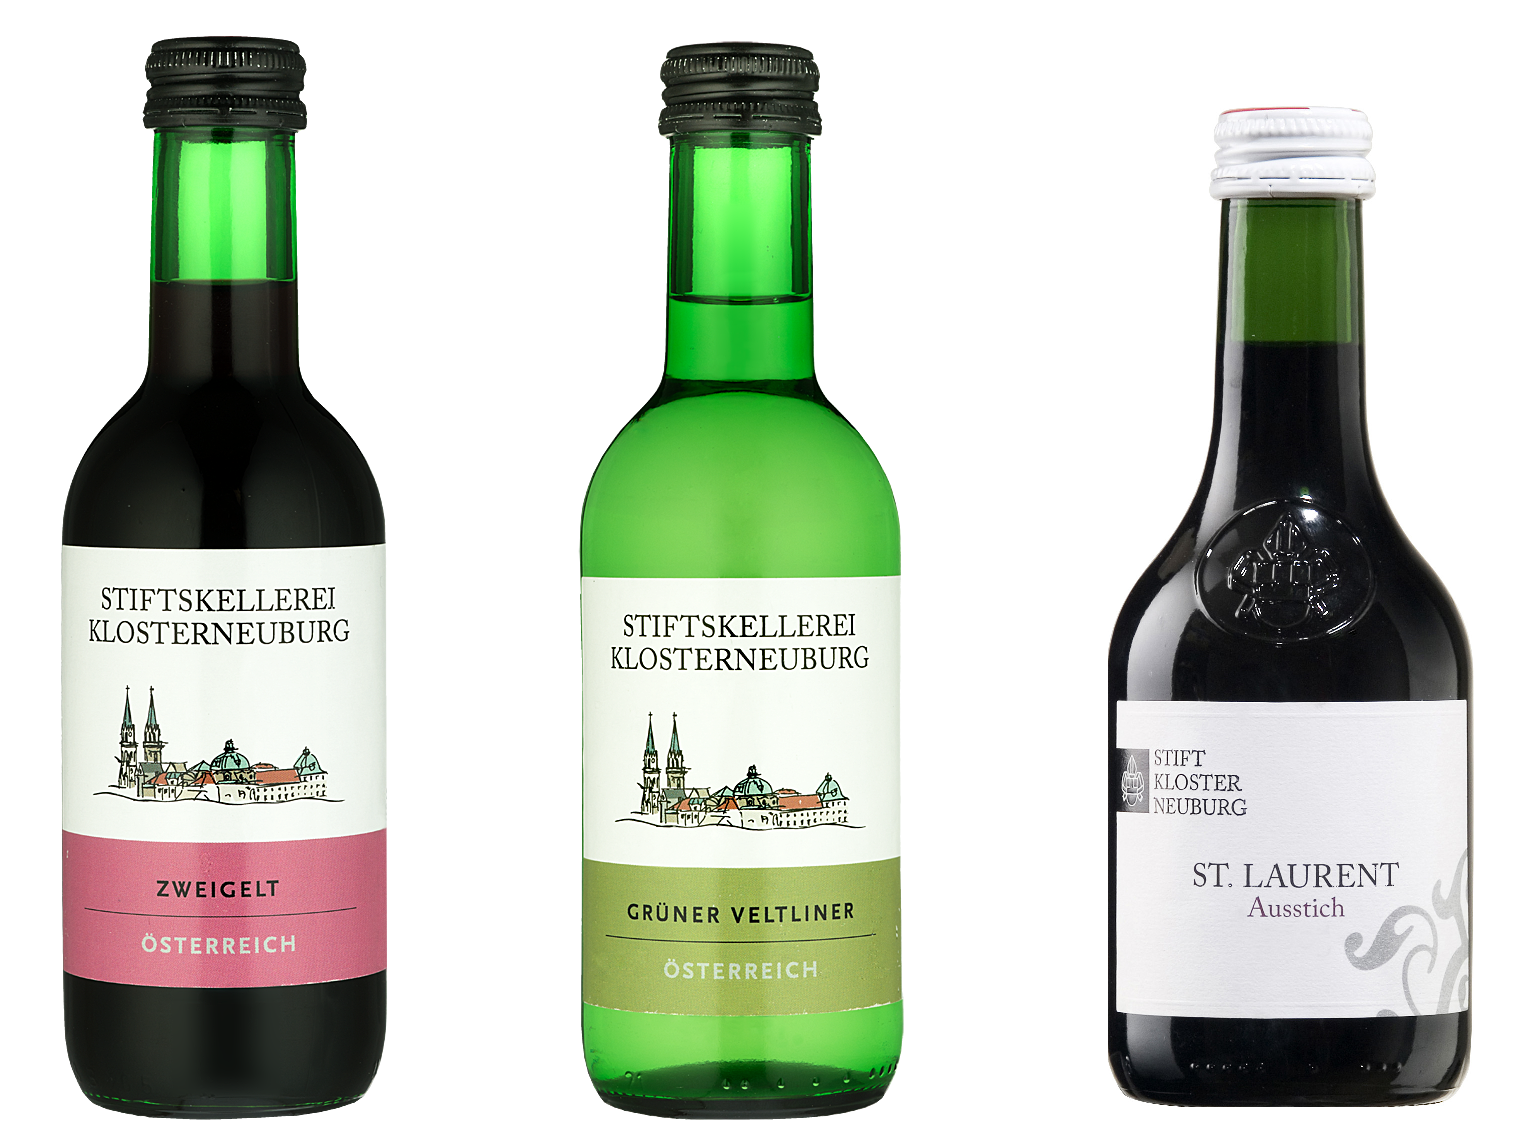 Stifterl - bottles with Zweigelt, Grüner Veltliner and St. Laurent